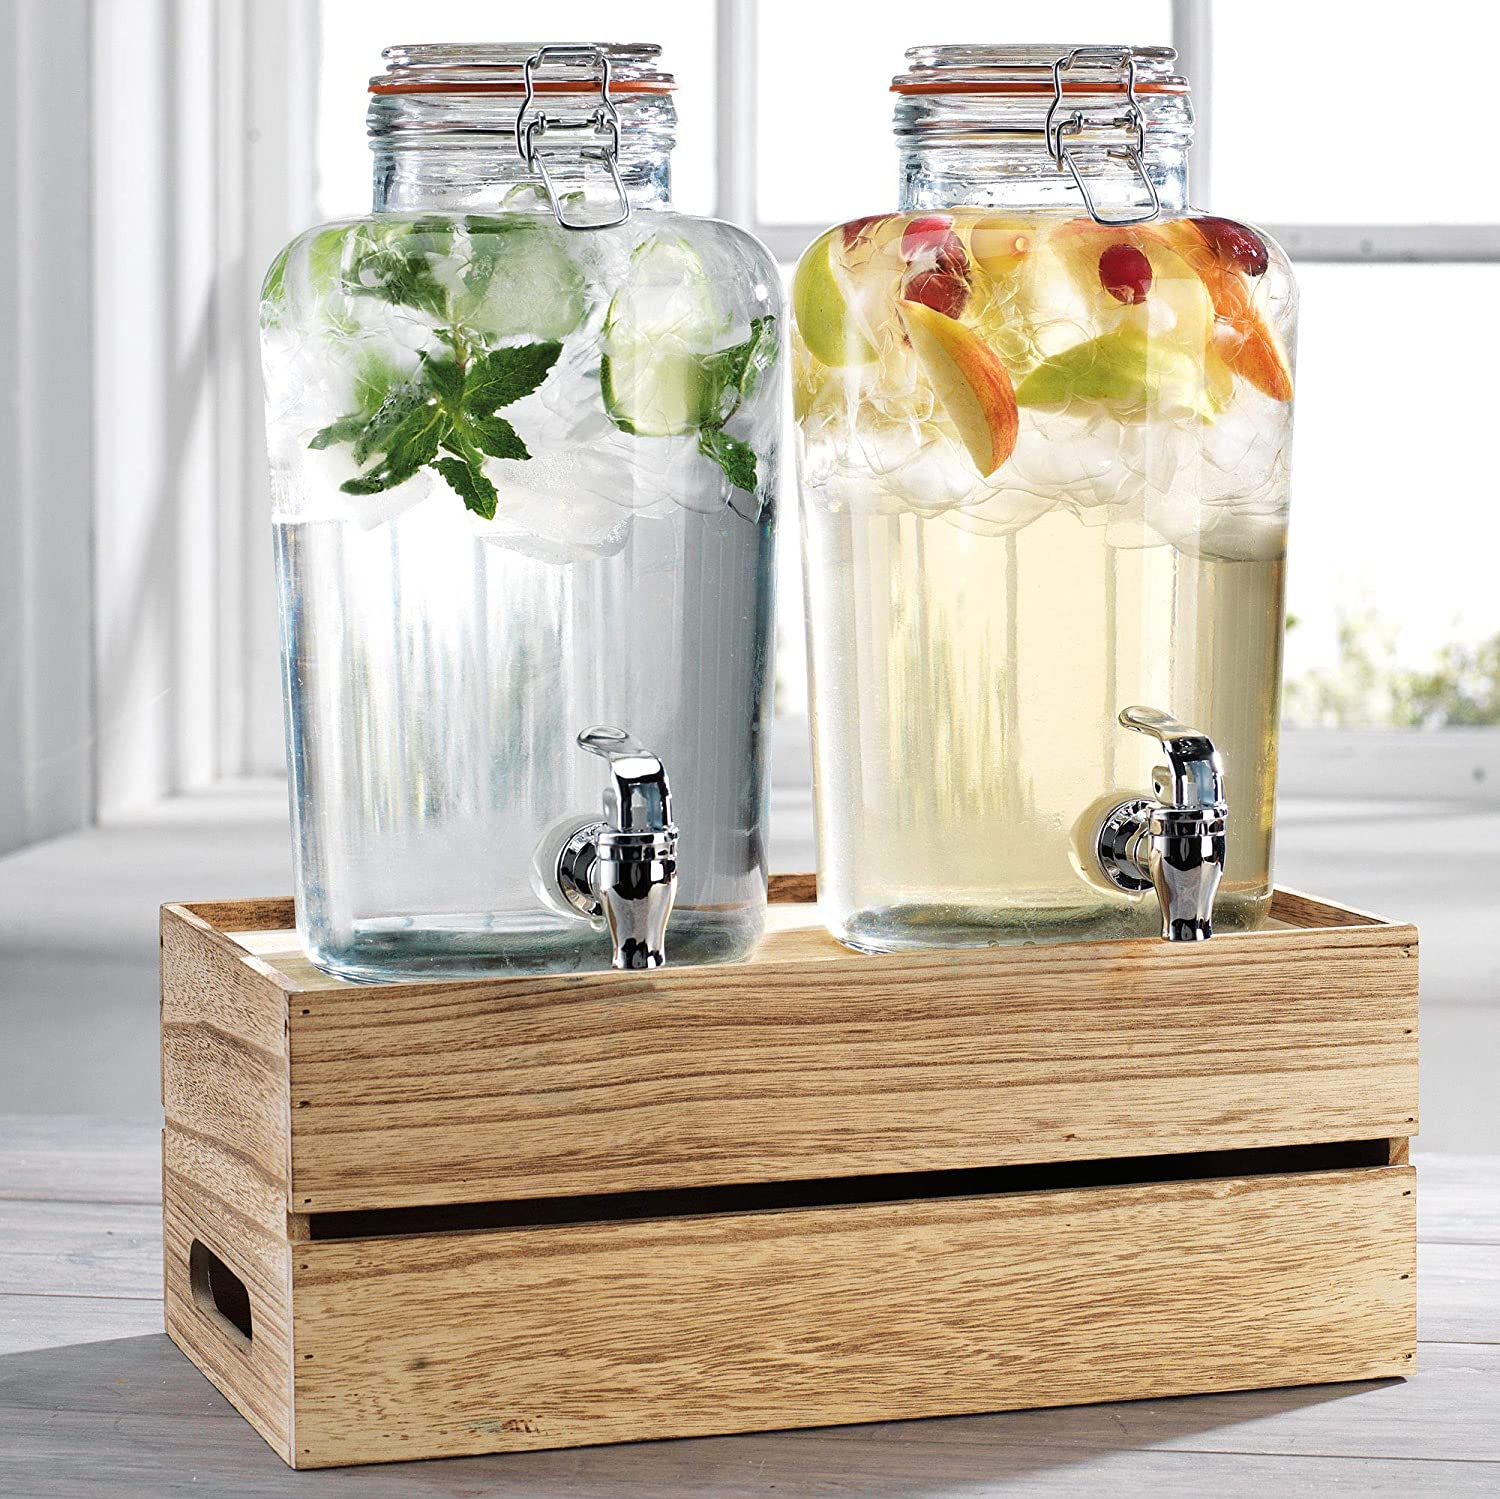 Outdoor Glass Beverage Dispenser + Wooden Base - 100% Leak Proof - Wide Mouth Easy Filling - Fun Party Glassware for Water, Iced Tea, Punch, Cold Drinks, 2-1 Gallon Mason Jars